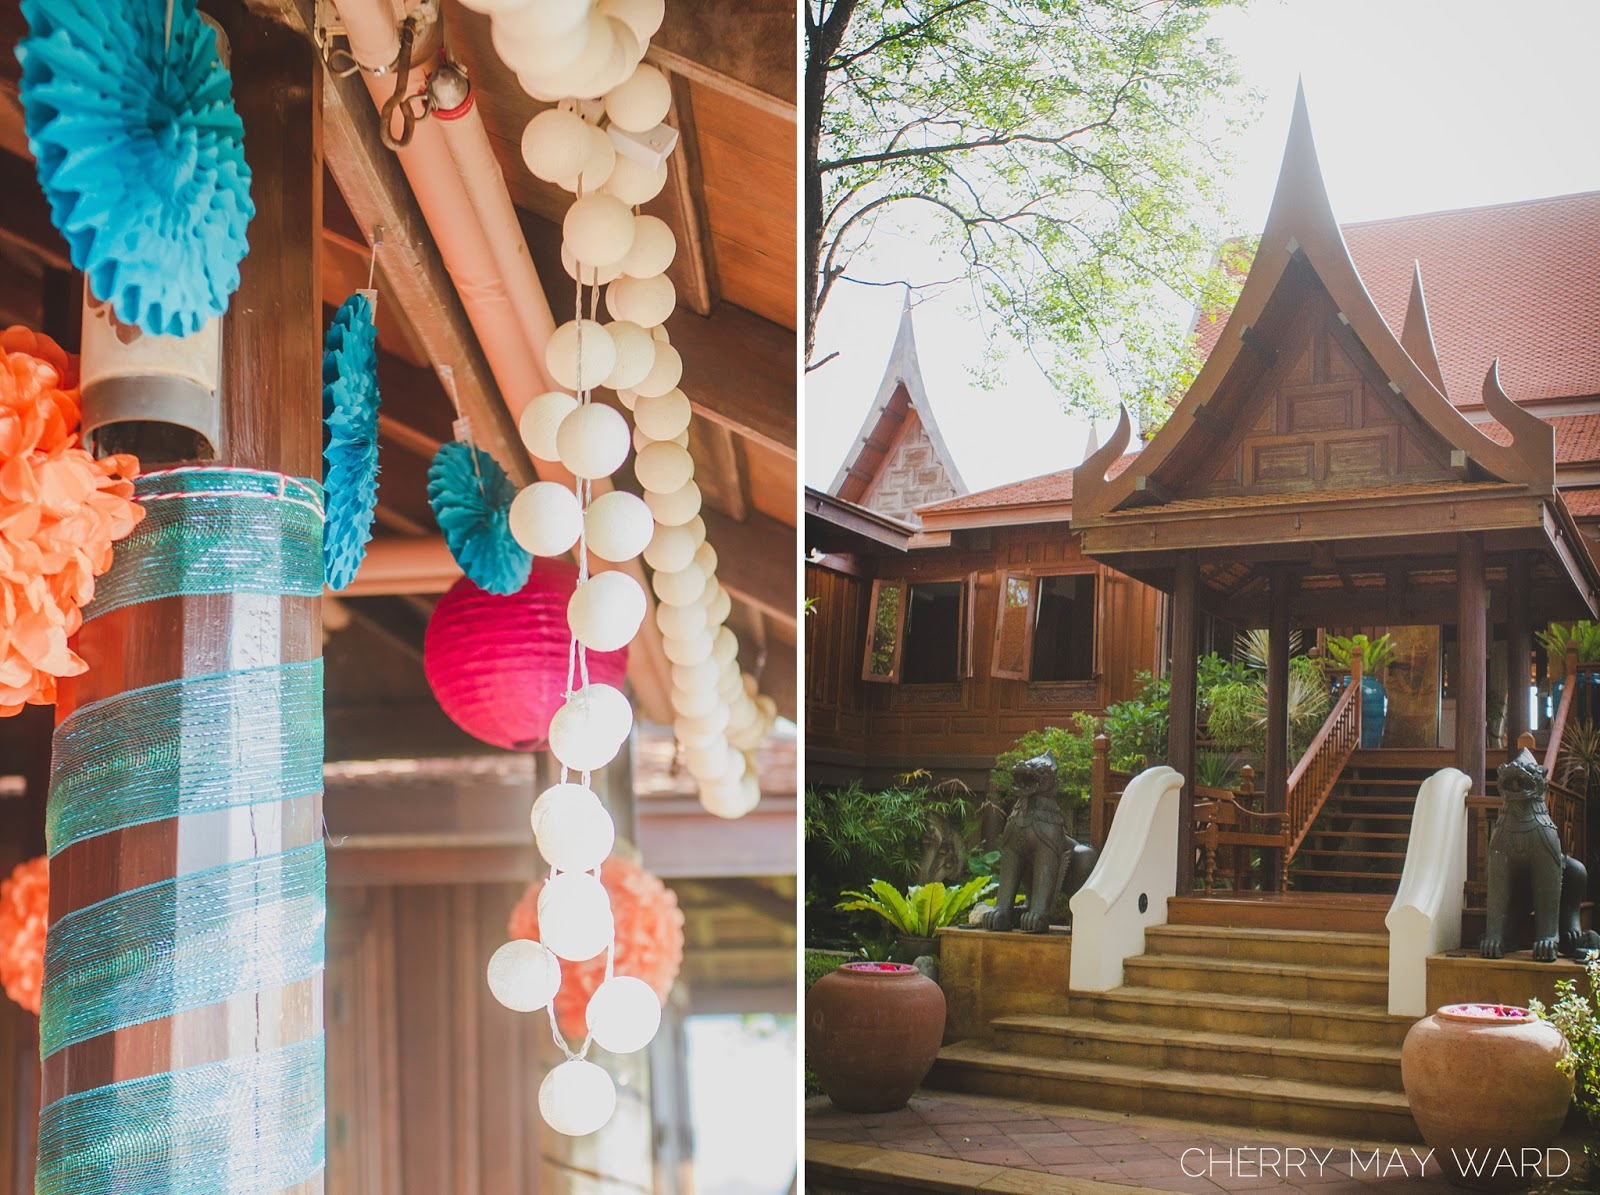 Thai villa on the mountain, villa with sunrise and sunset views, Koh Samui classic Thai villa, DIY decorations for a wedding, colourful DIY wedding decorations, fun decorations, colourful decorations, wedding decor, wedding decorations, do it yourself, DIY wedding in Thailand, Cherry May Ward Photography